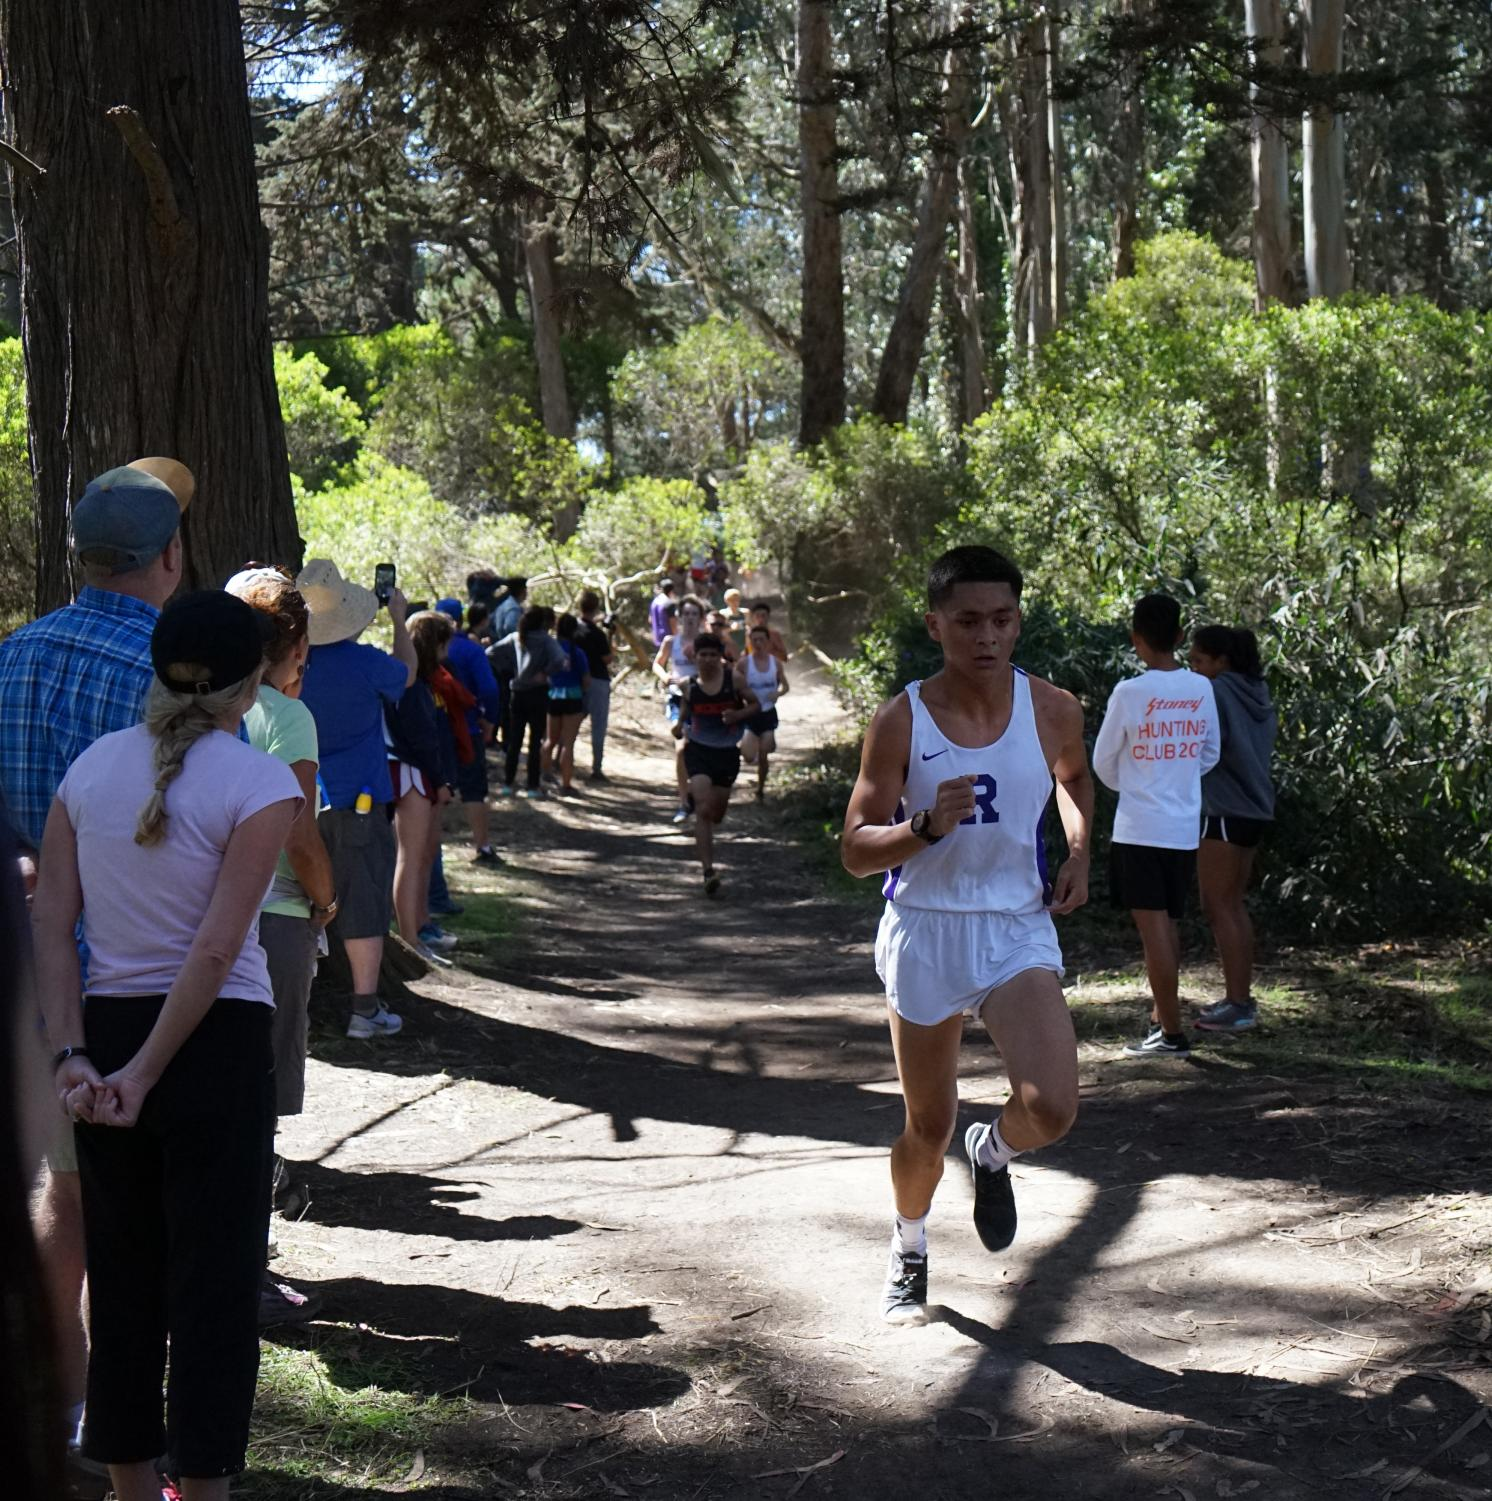 EJ Odocayen '20 at the Lowell Invitational at Golden Gate Park. goals together, as cross country is a team sport.